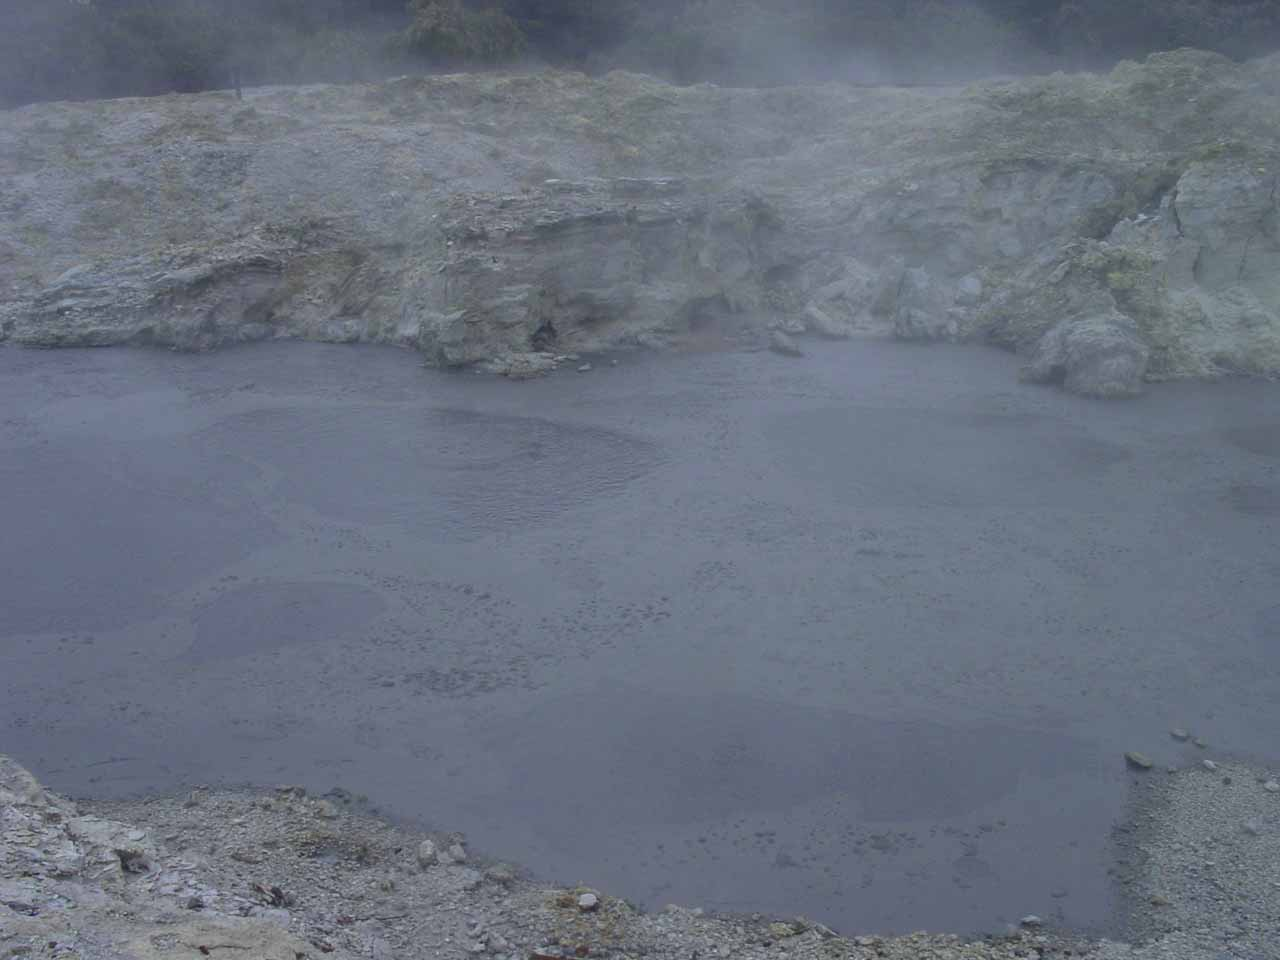 This was a dark and really smelly mud pool that was boiling with bubbles splattering the mud